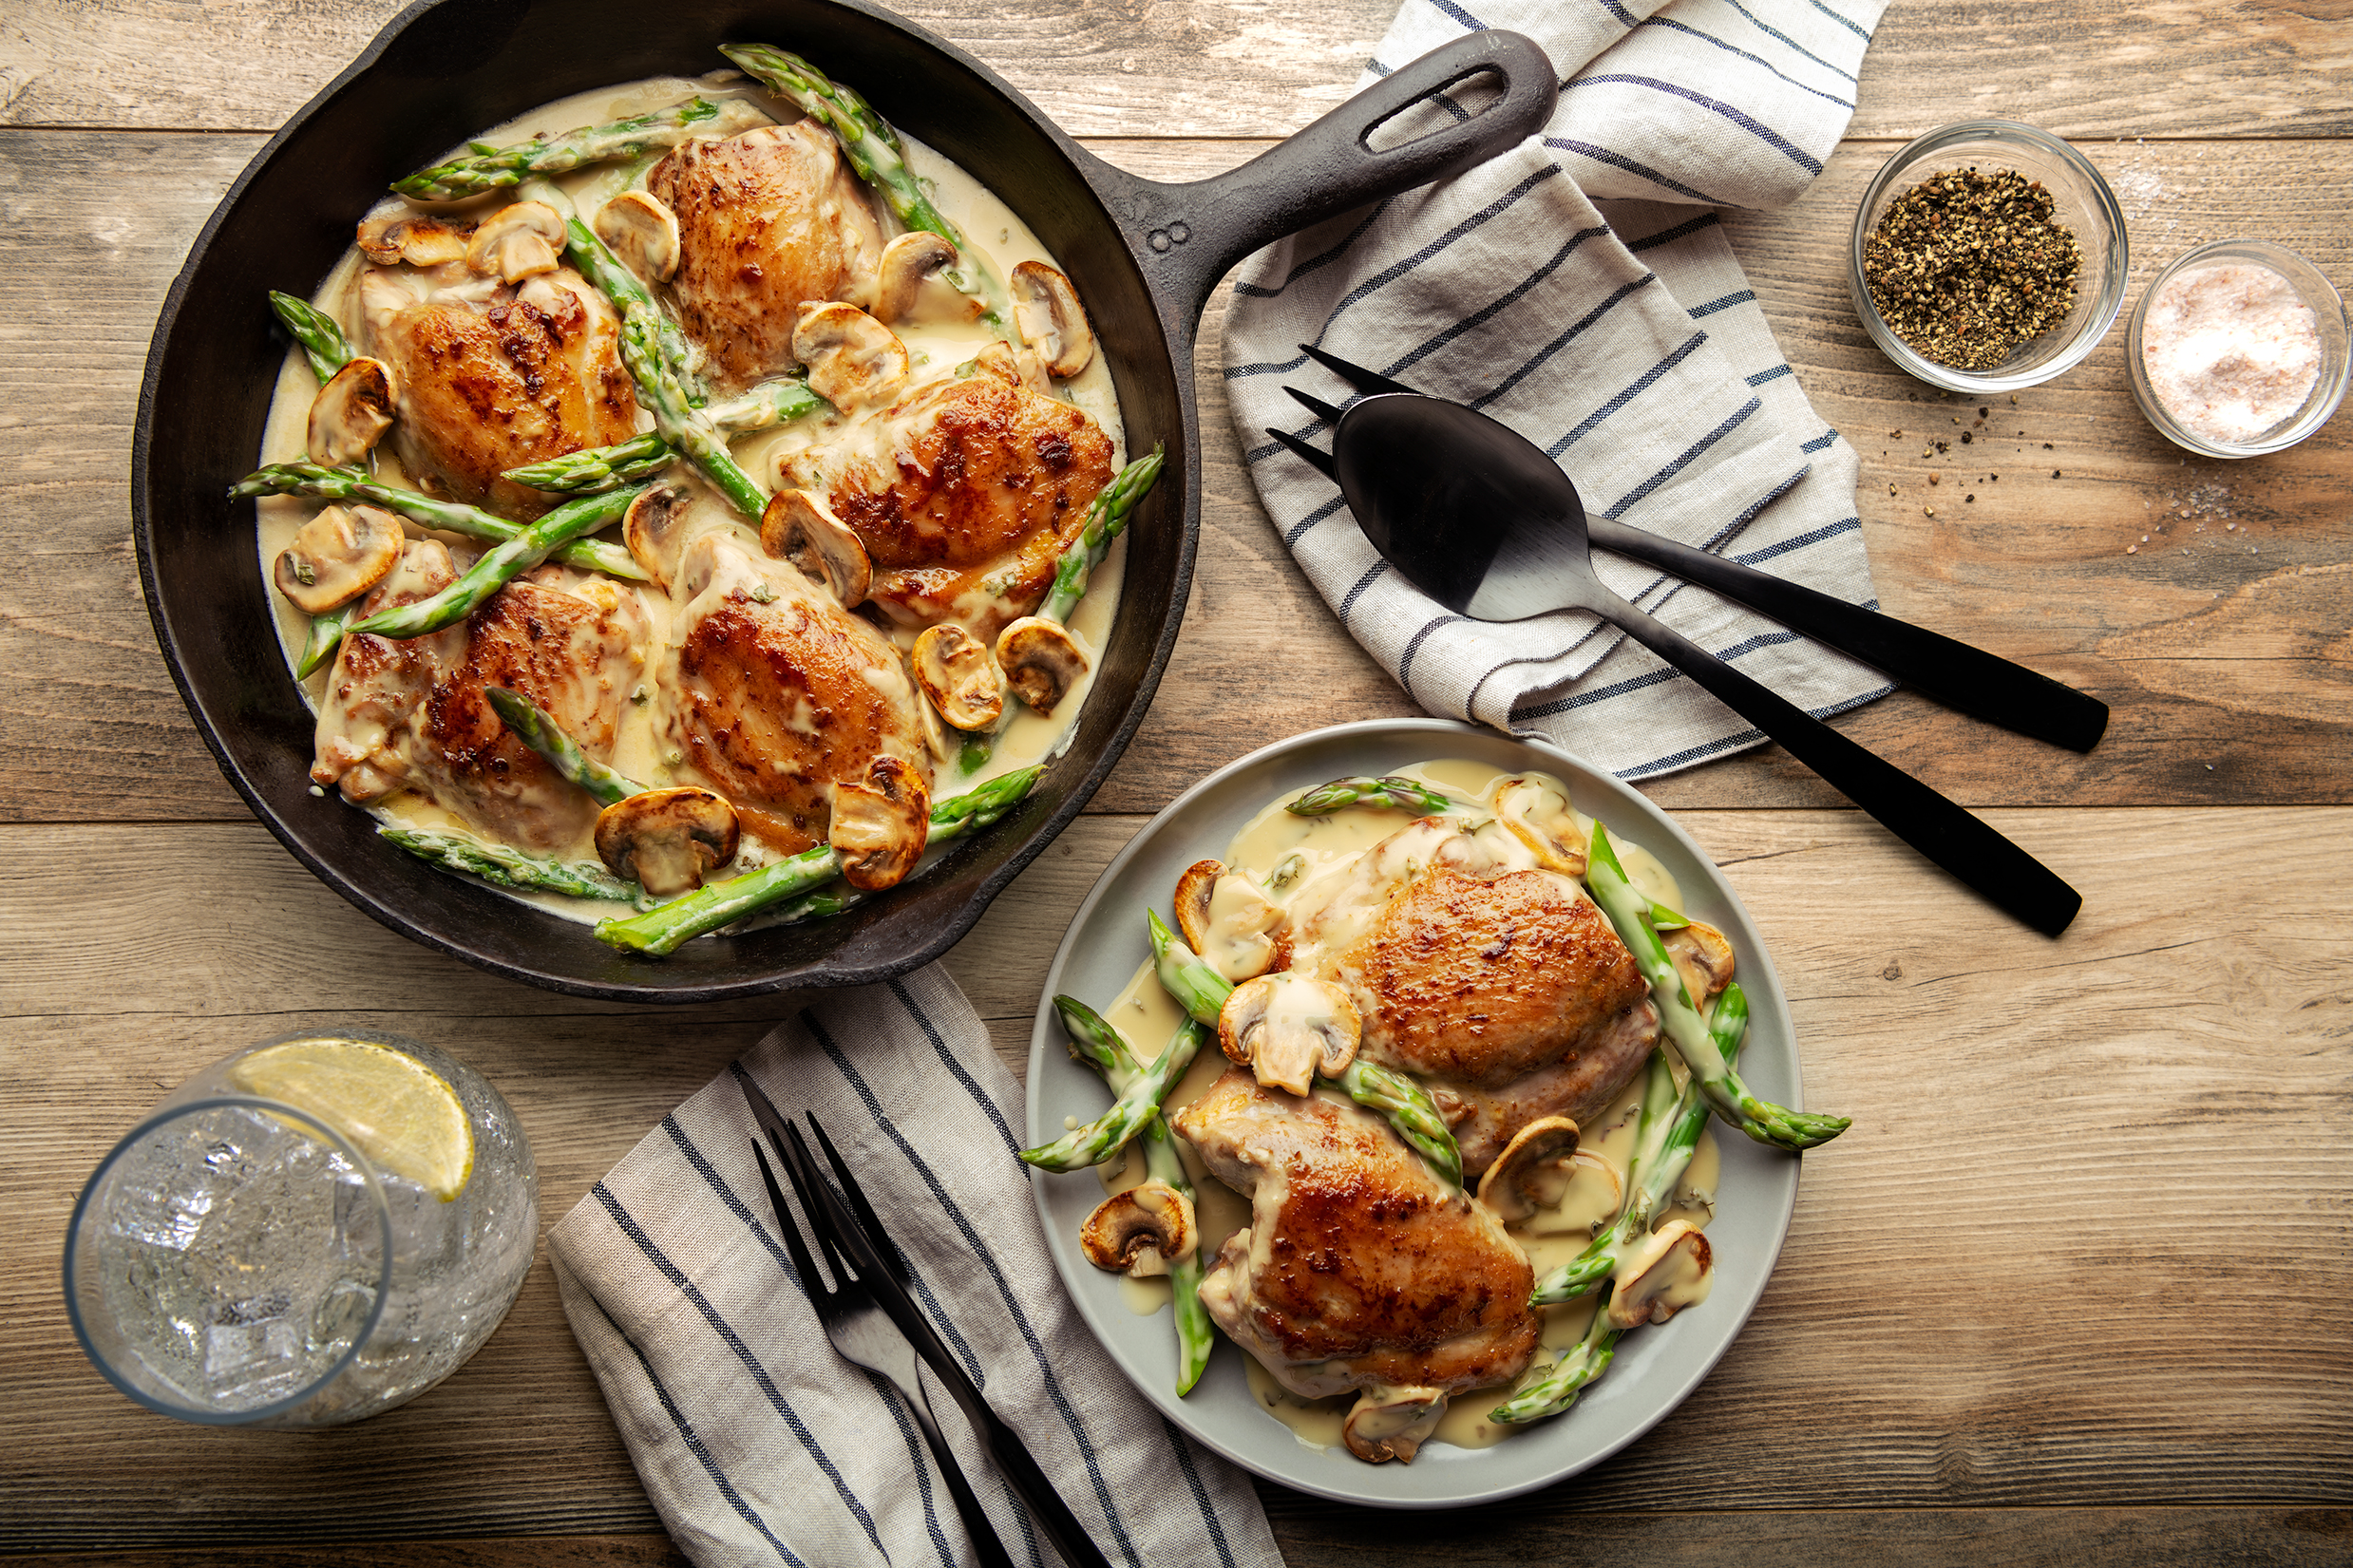 Creamy One Pan Chicken with Asparagus and Mushrooms